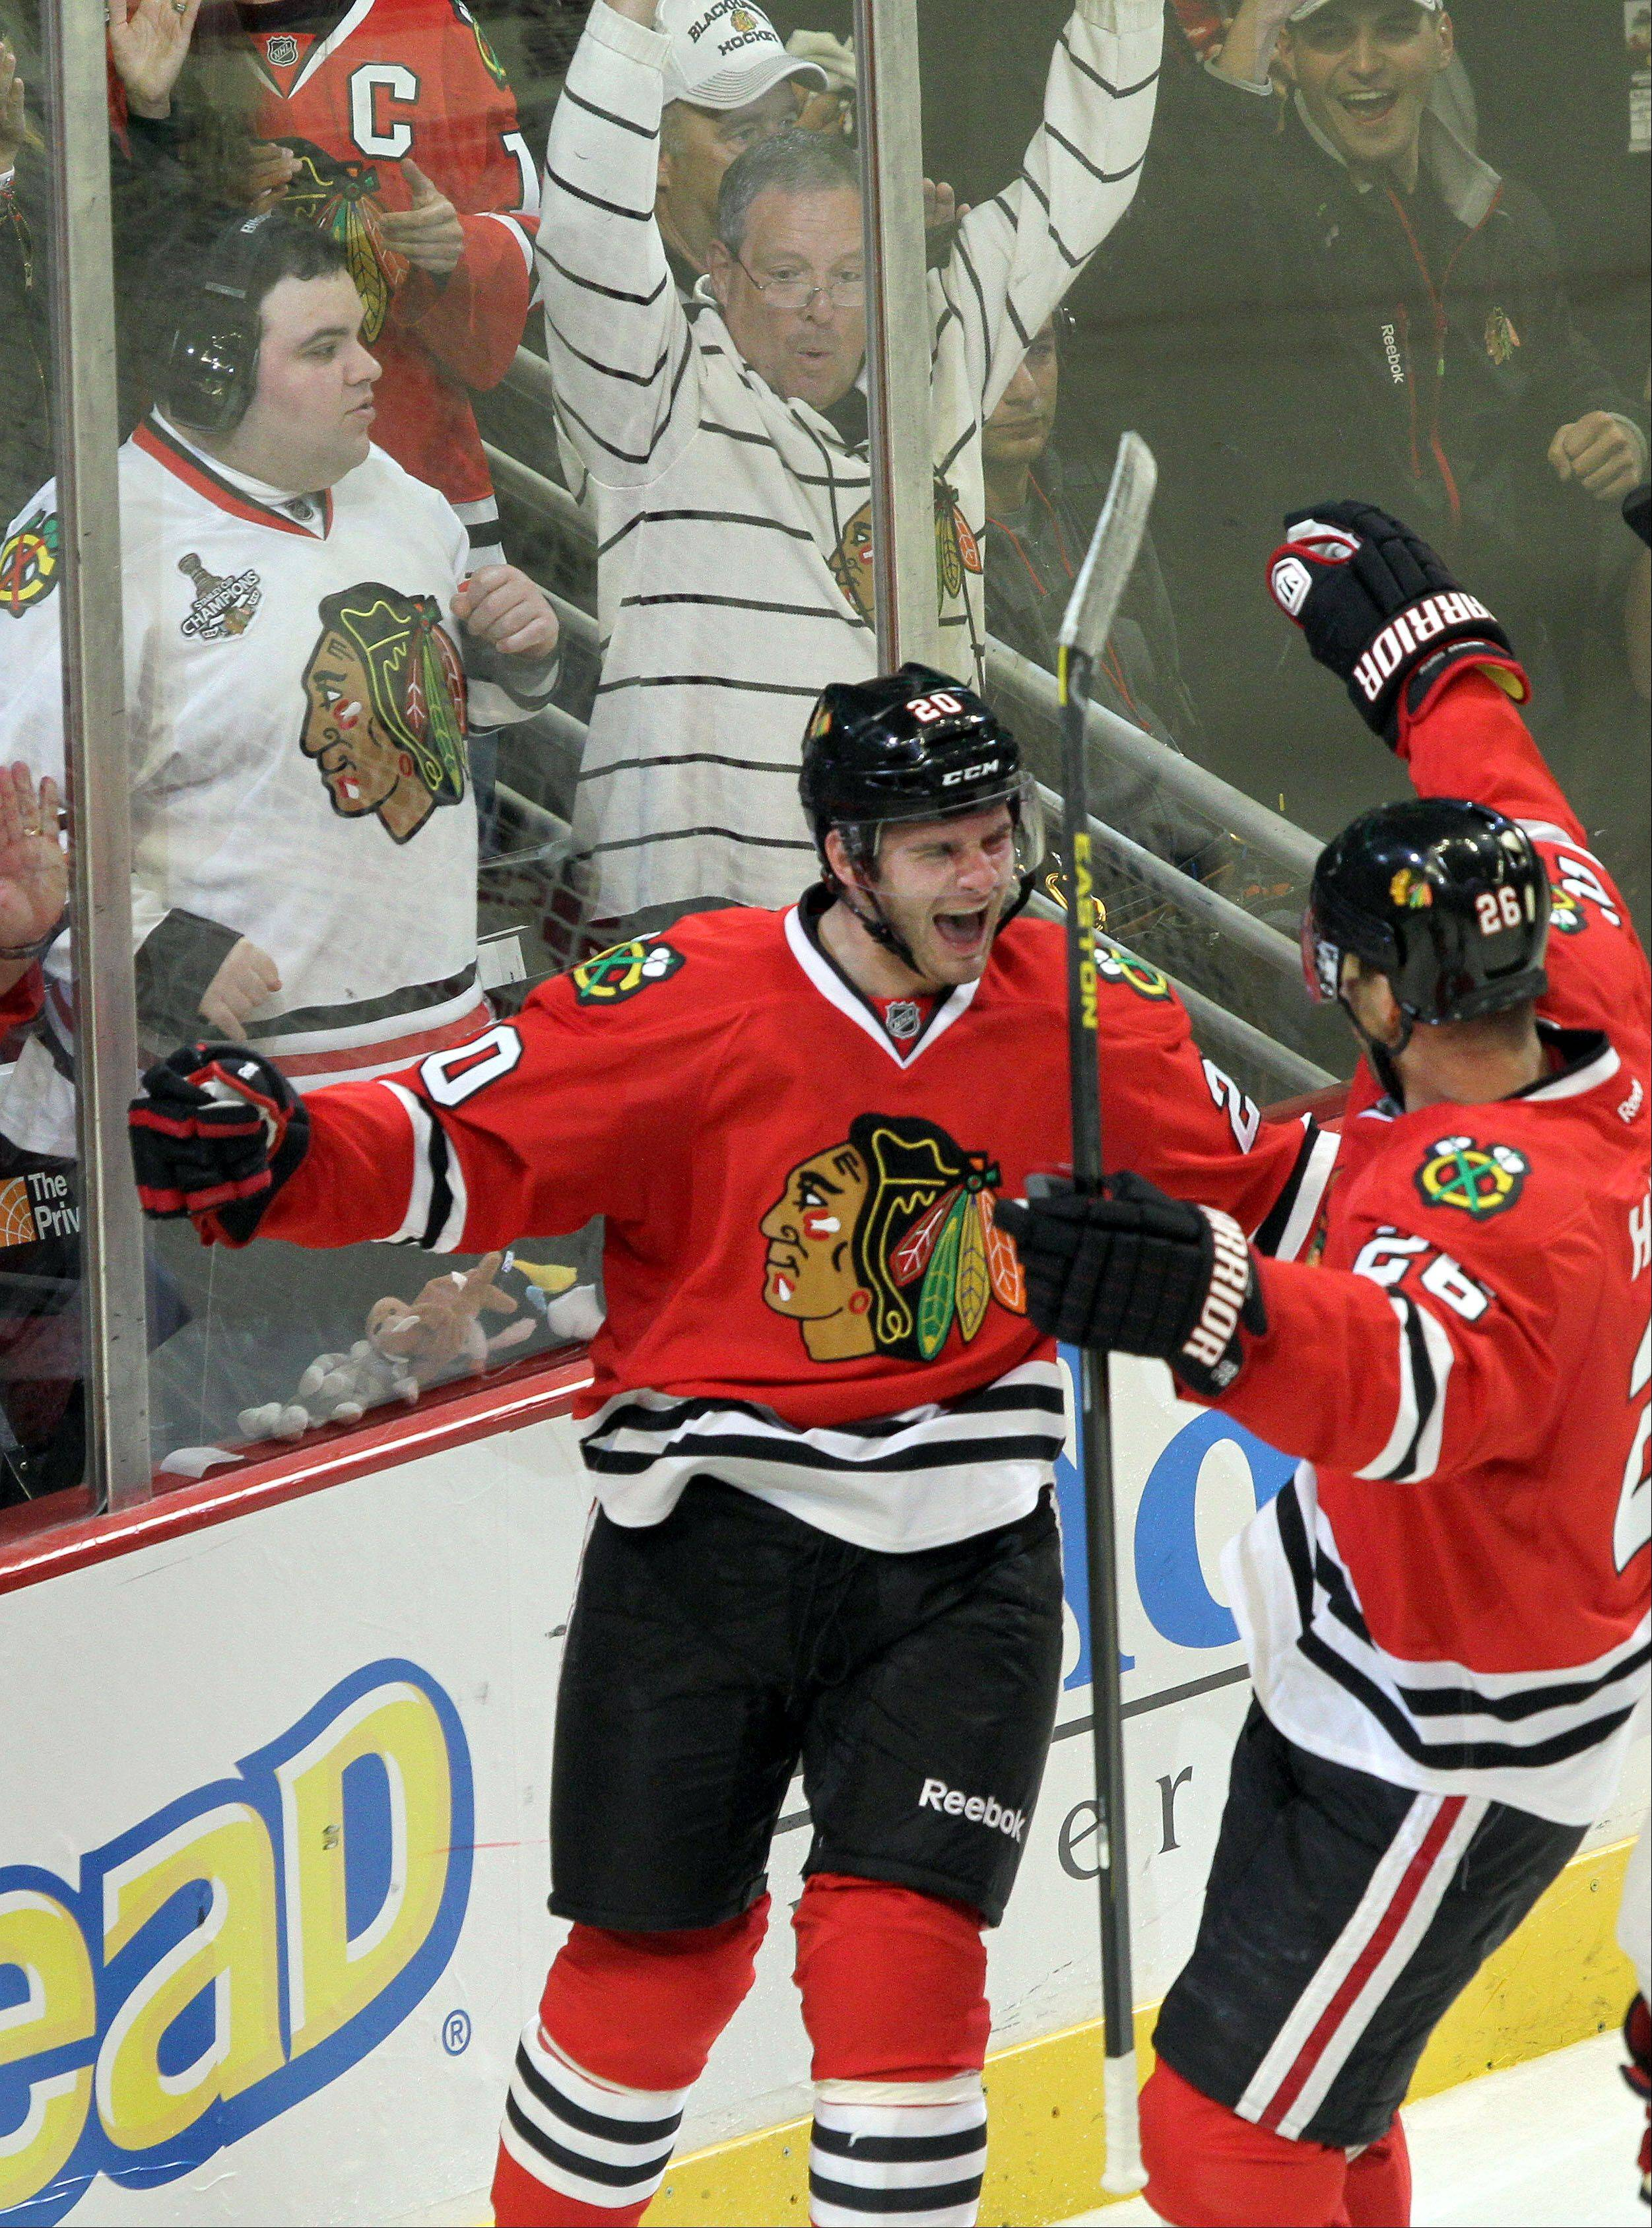 Blackhawks win again in dramatic fashion